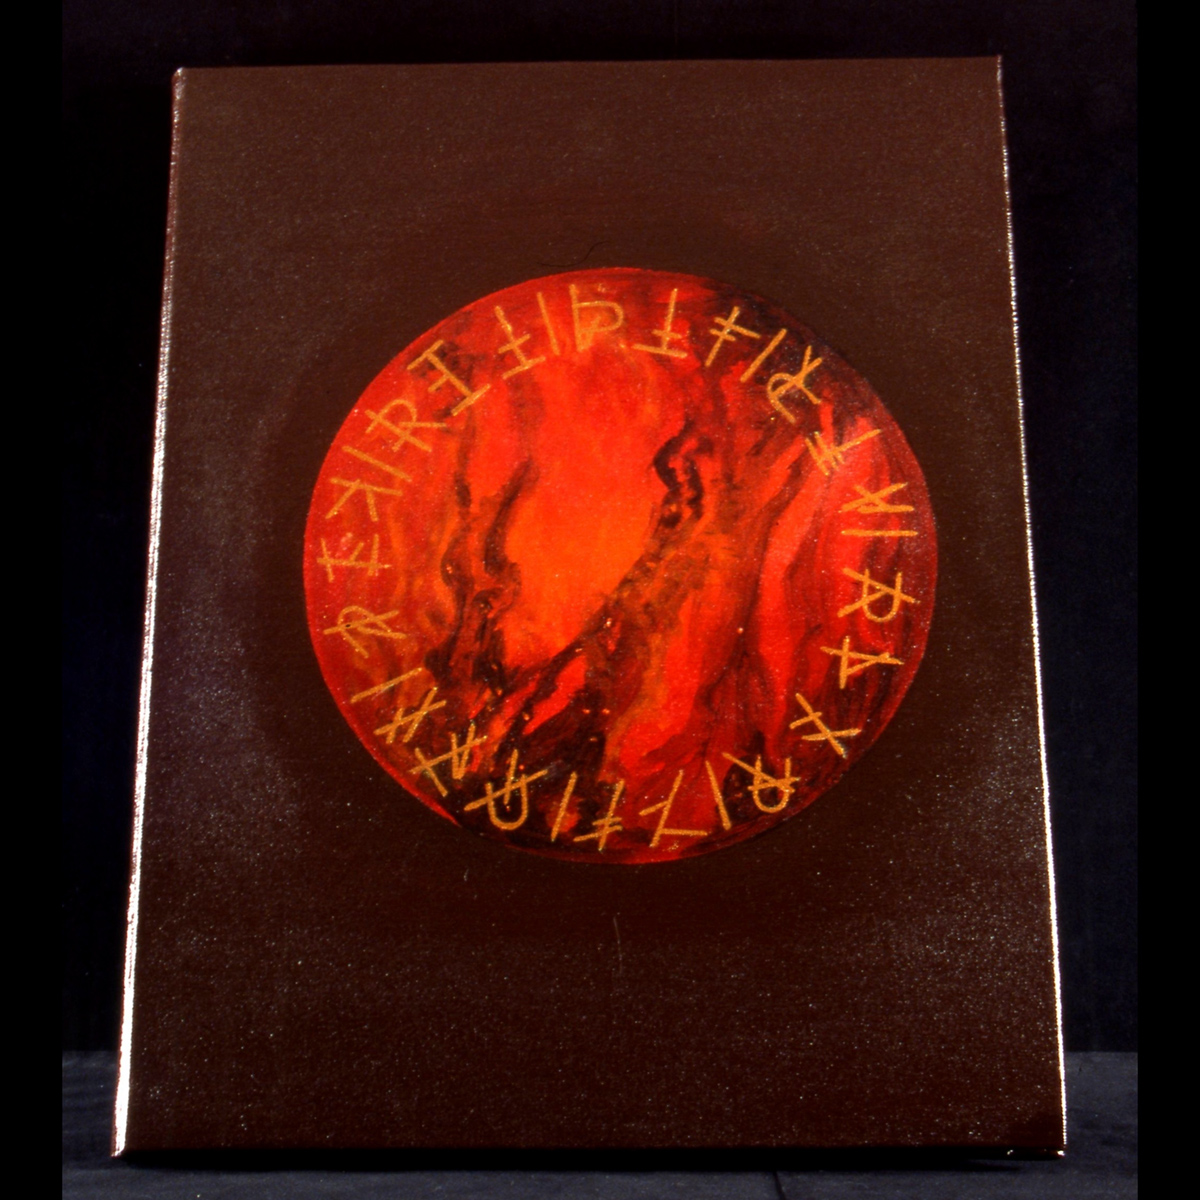 1998 ©Thomas Parker Williams, Fire Book, cover